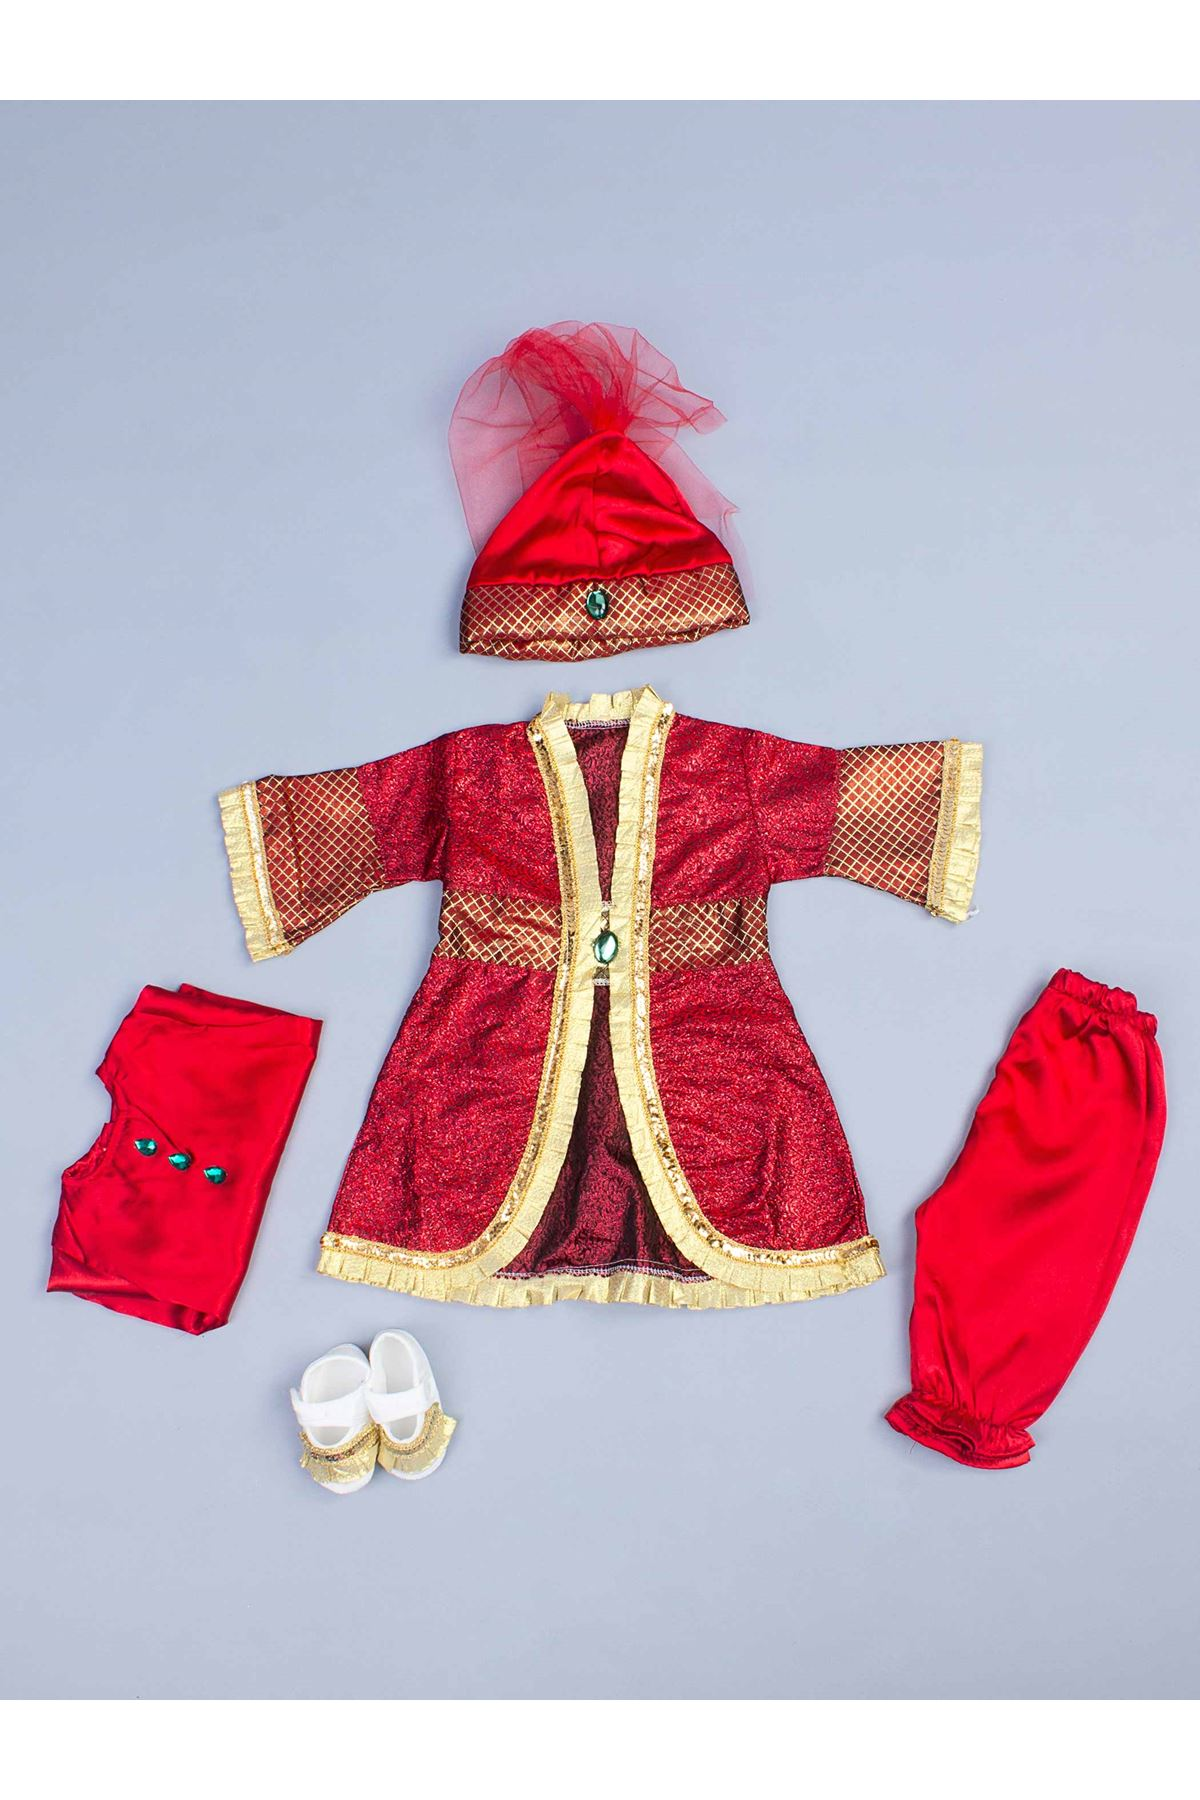 Red Baby Girl Suit Jumpsuit Ottoman Vintage Dolls 5 Piece set Special occasions Sultan Hurrem Suit Girls Baby Models